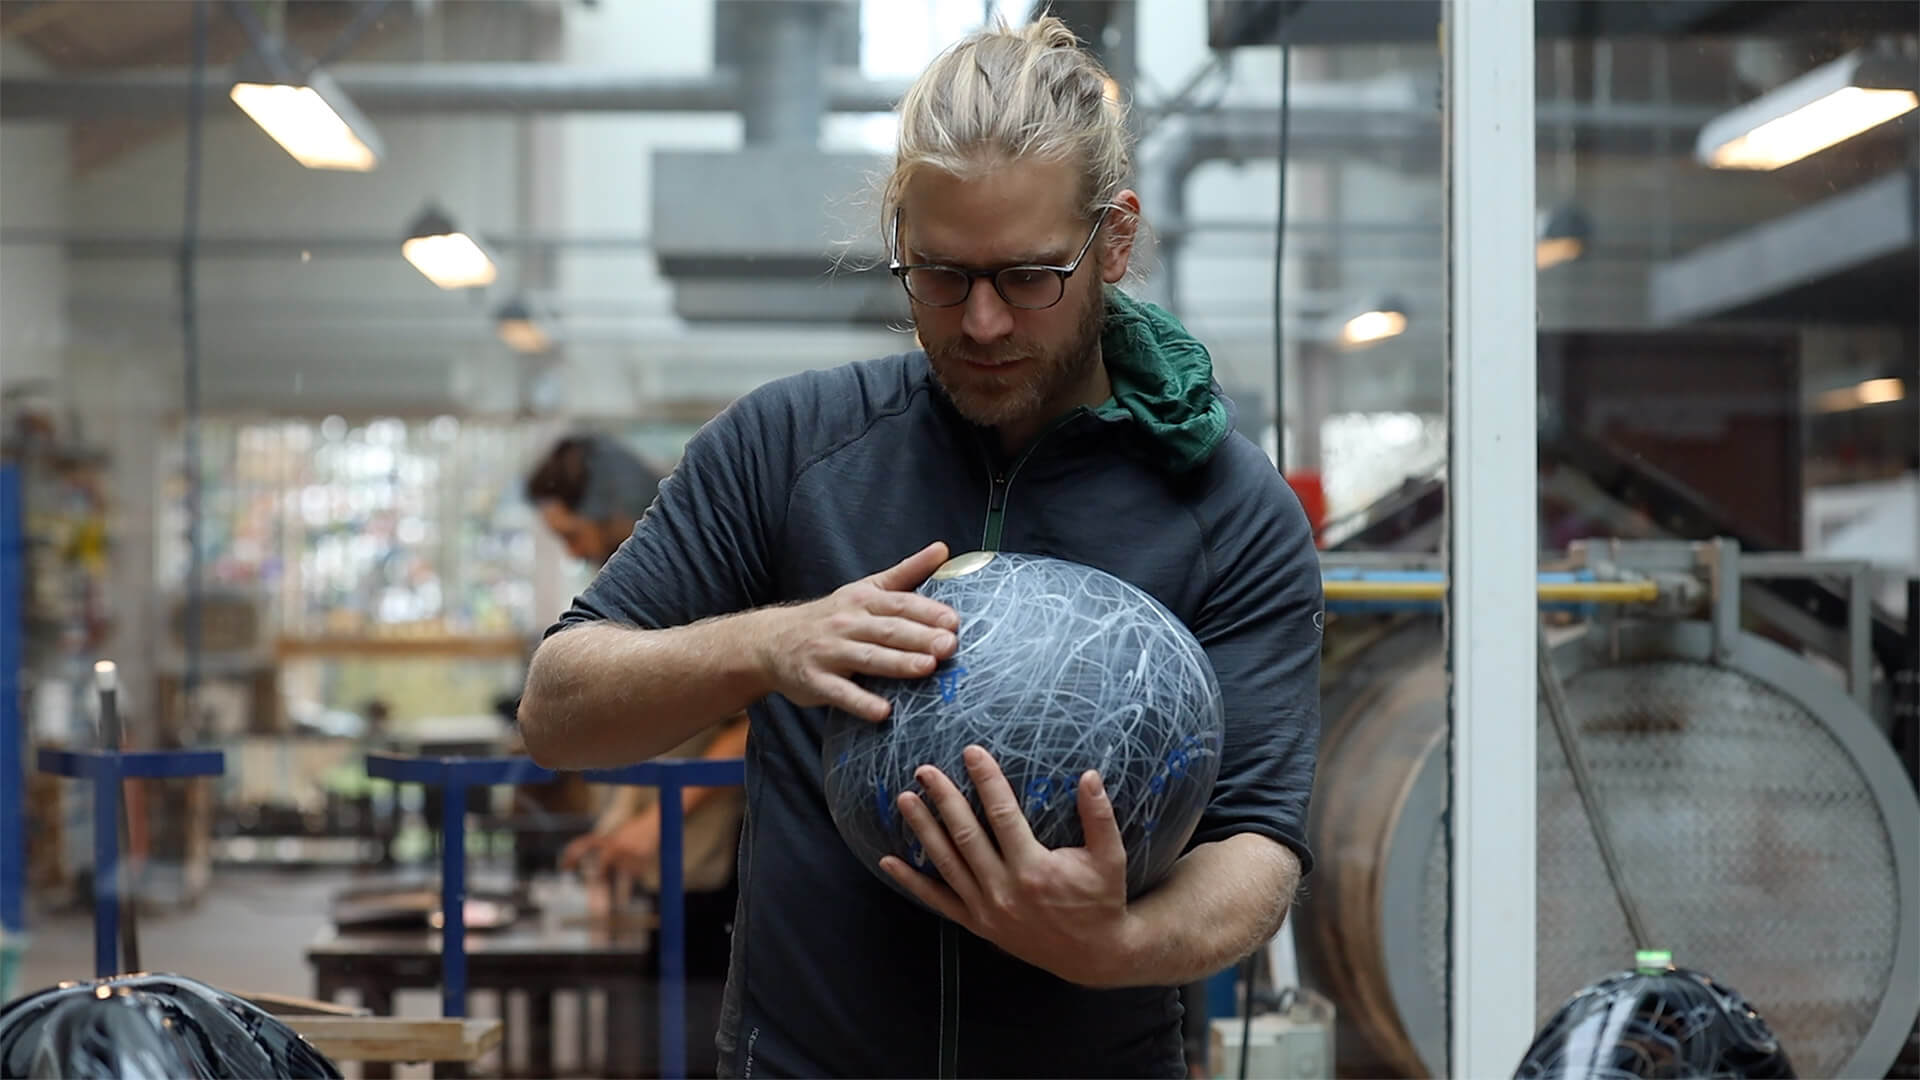 Jonas Noël Niedermann, glass artist, working portrait, Finn Lynggaaard 2020